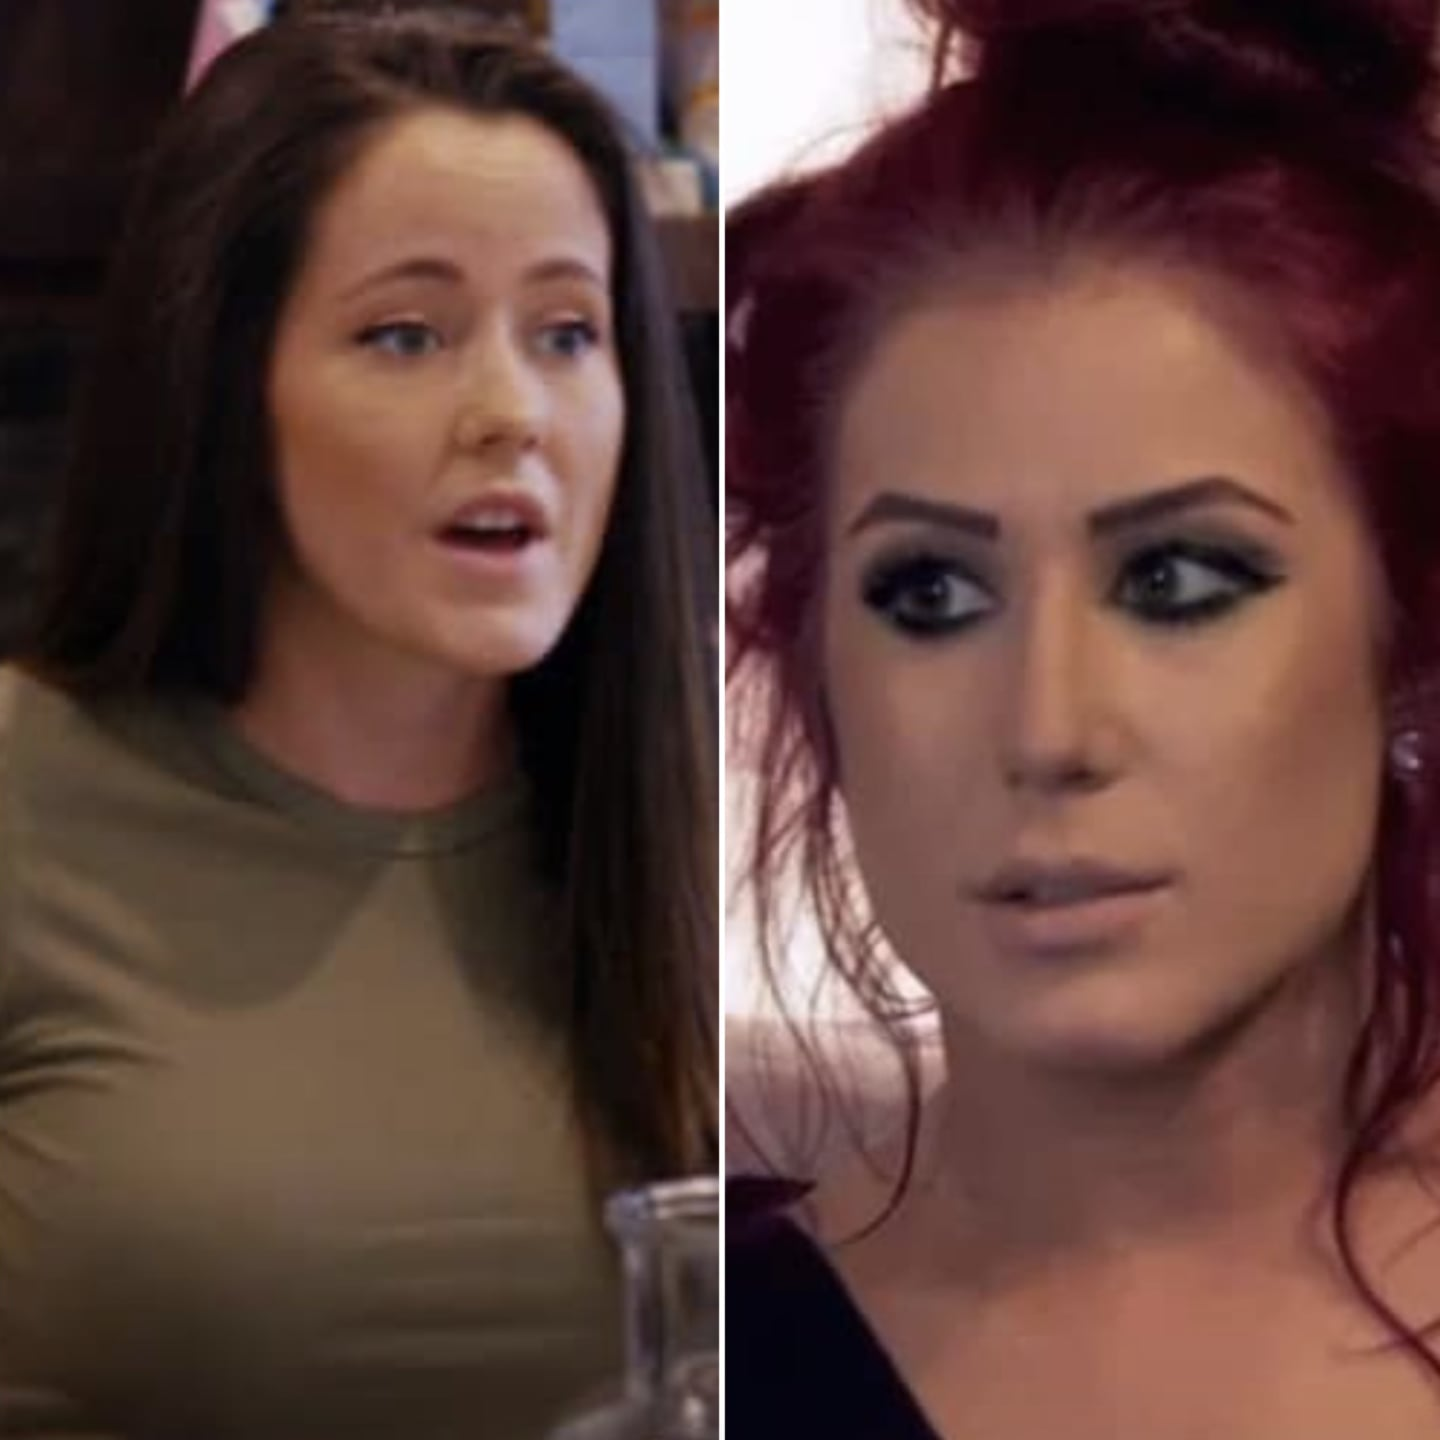 jenelle evans to chelsea houska: nice hair extensions, you